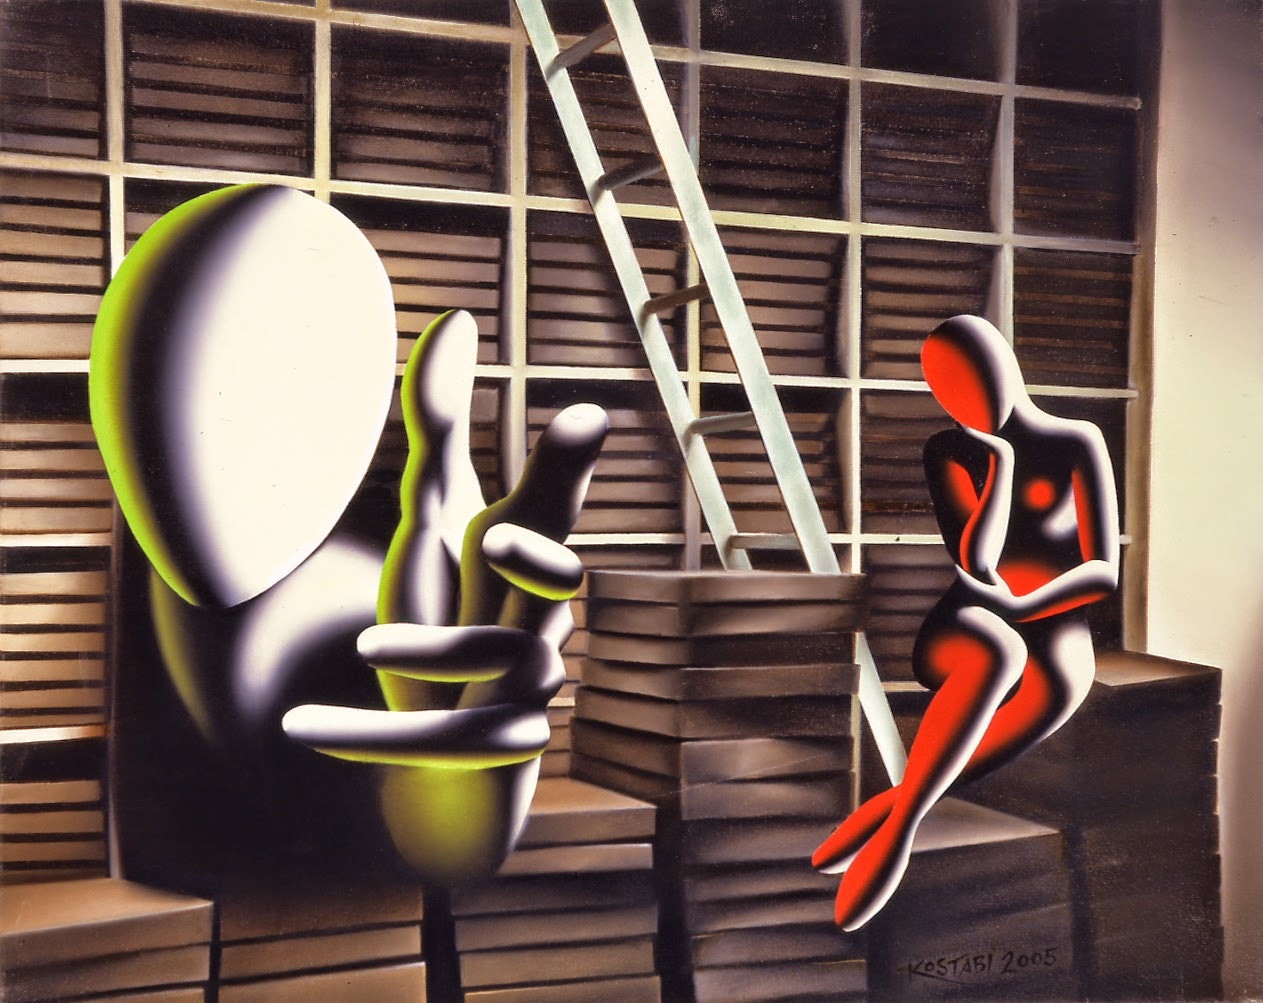 1477571013650729 mark kostabi tutt art 65